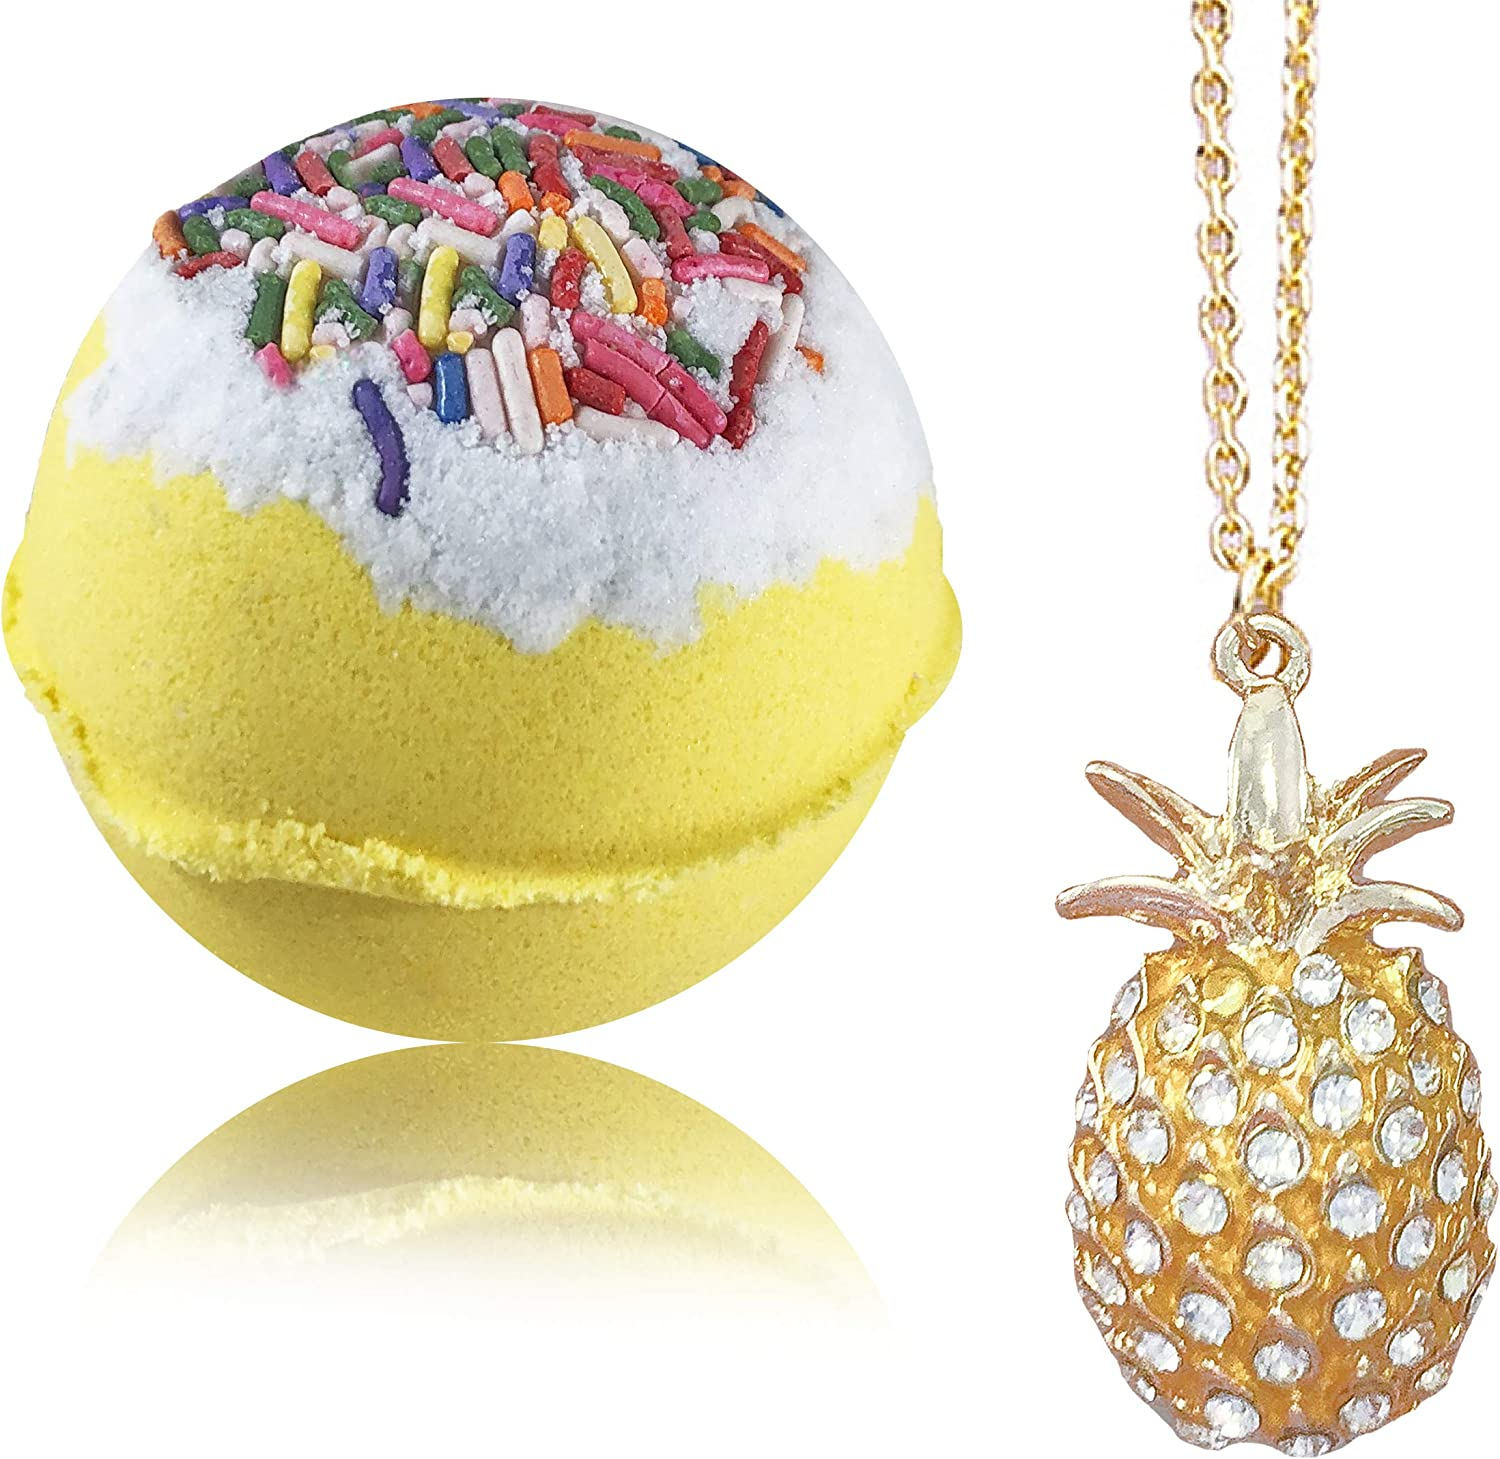 Bath Bombs Jewelry with Necklace Pineapple Inside   Perfect Treasure Hidden  in Huge Bath Bomb   Fizzy and Bubble Organic Bathbomb in Gift Box for